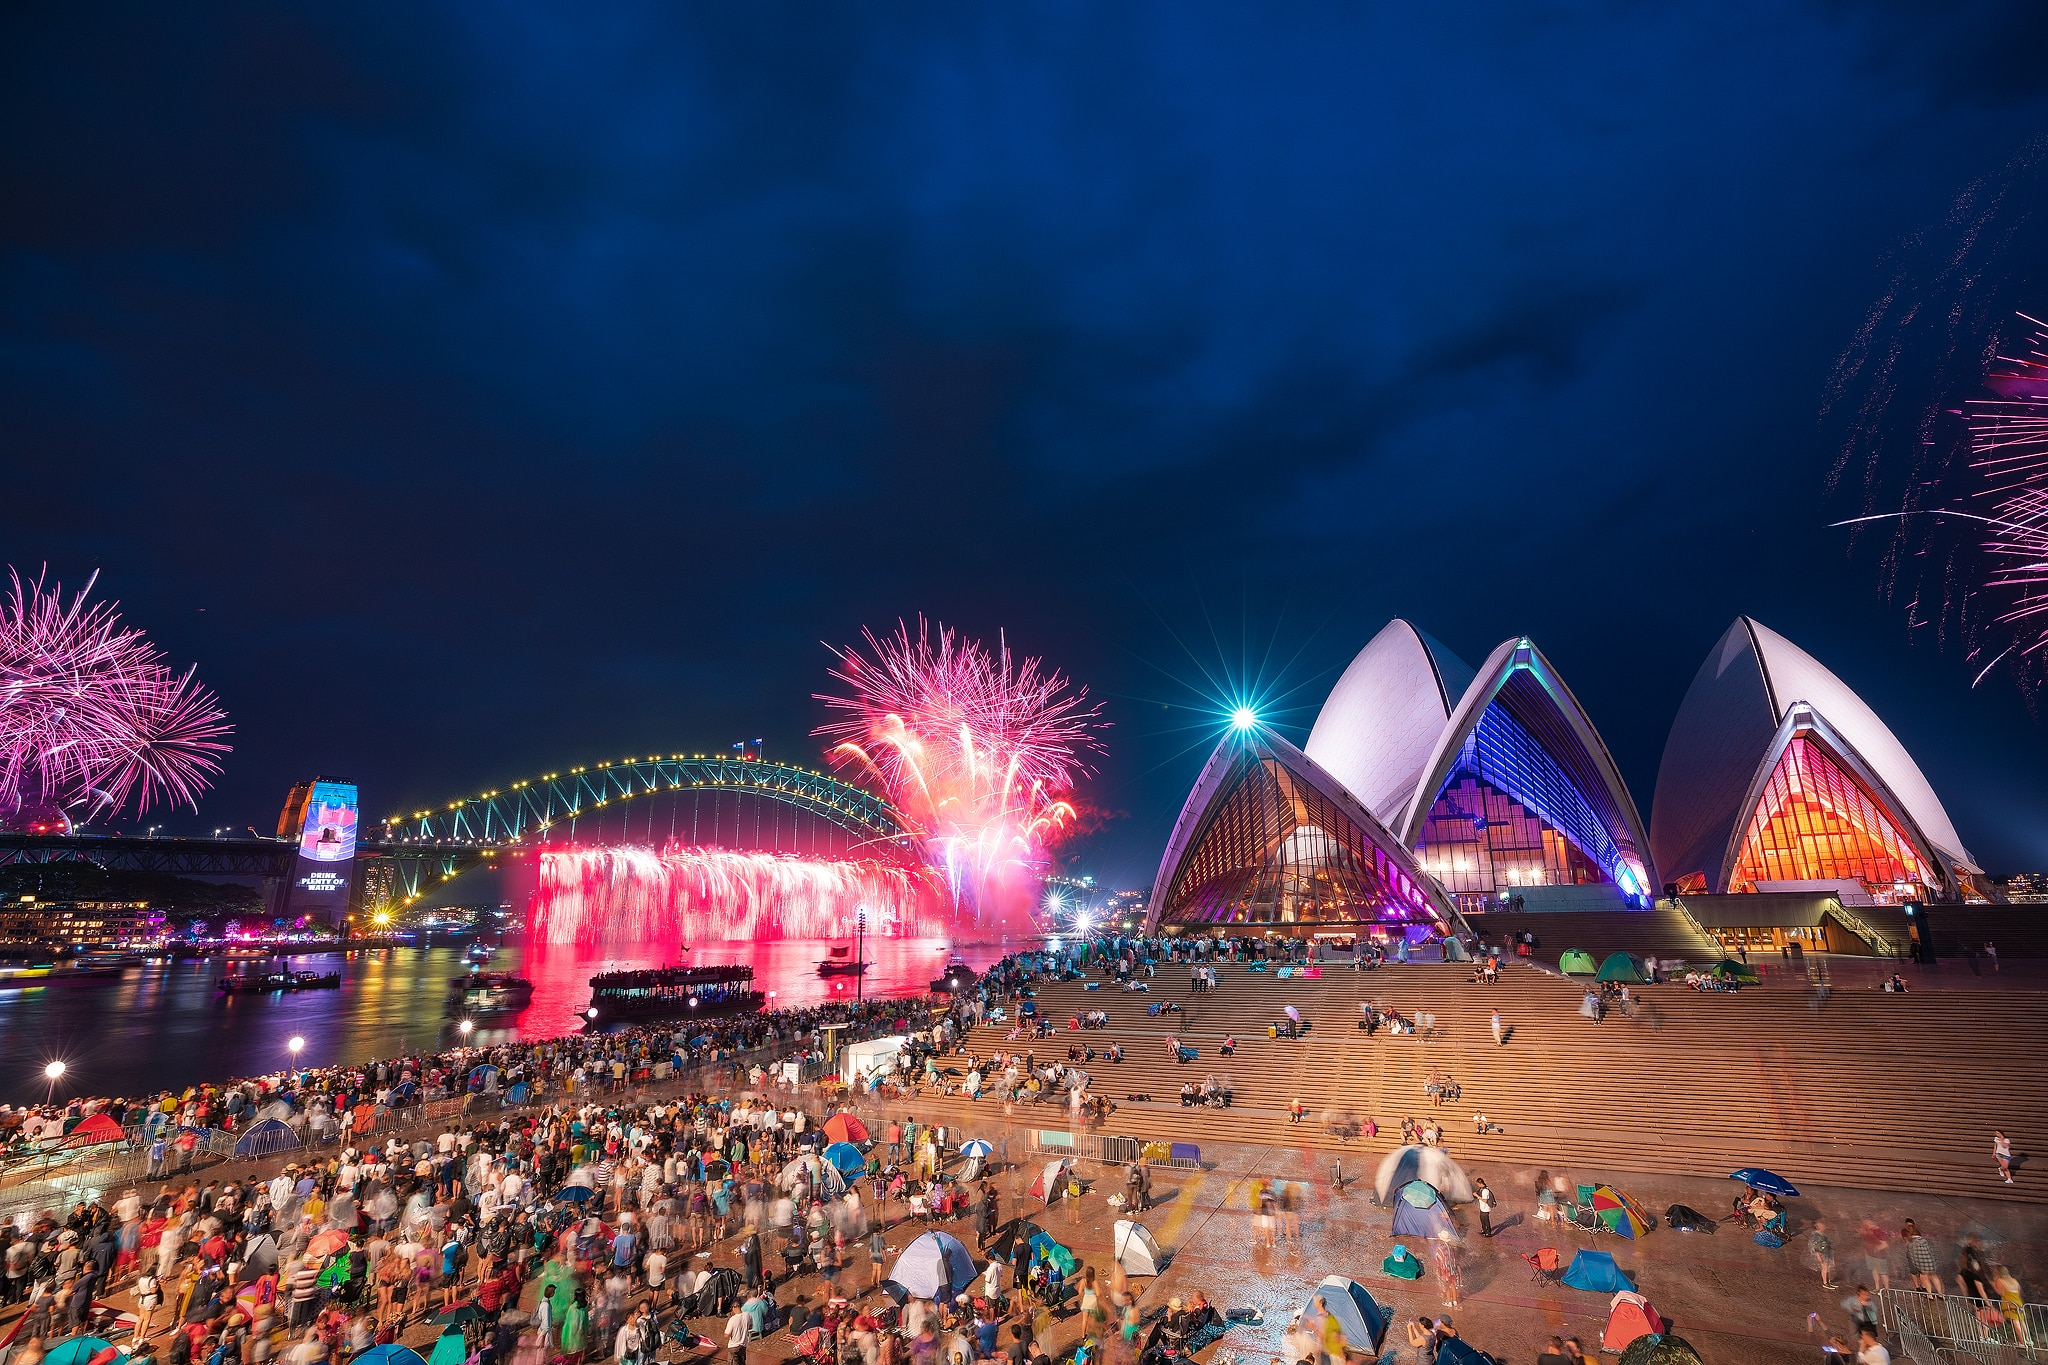 Sydney will welcome a new decade with a symphony of light, colour and sounds.